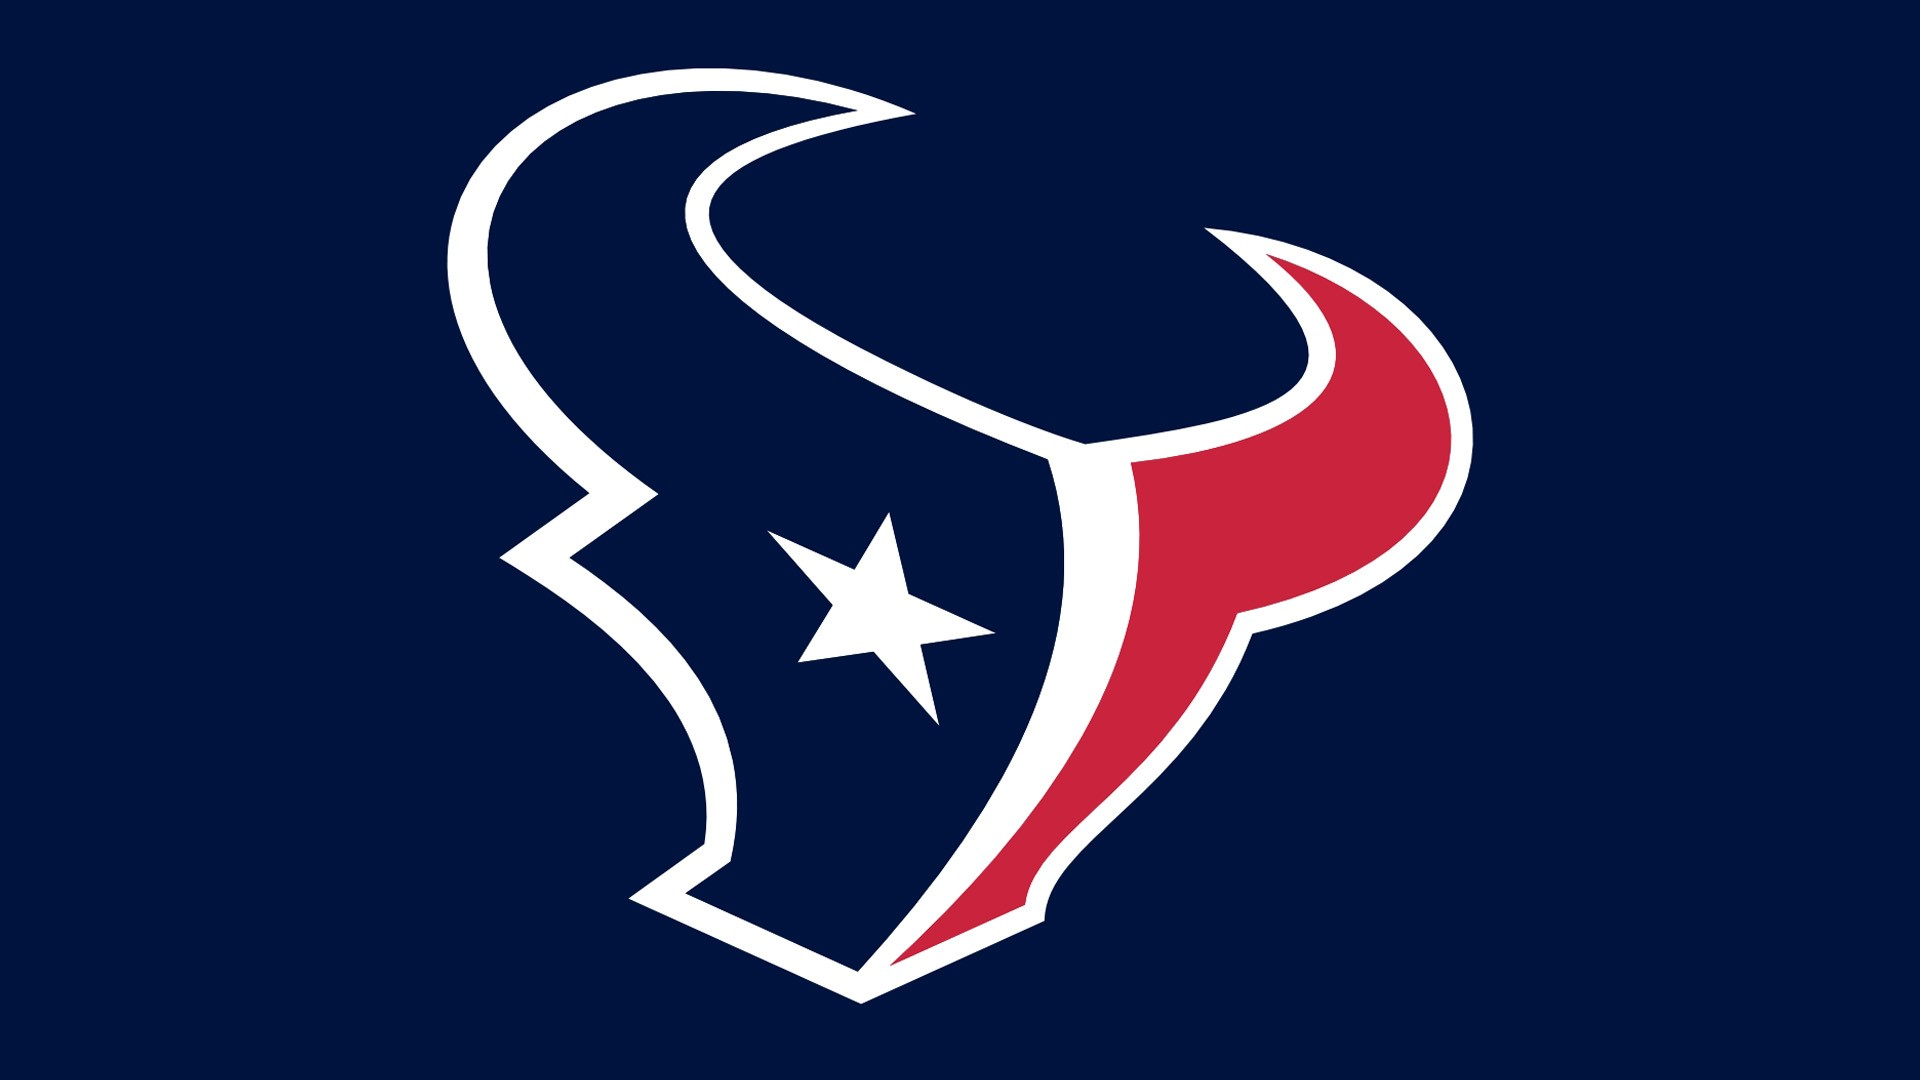 Houston Texans Team Logo Blue 1920x1080 Hd Image Sports   Nfl Football